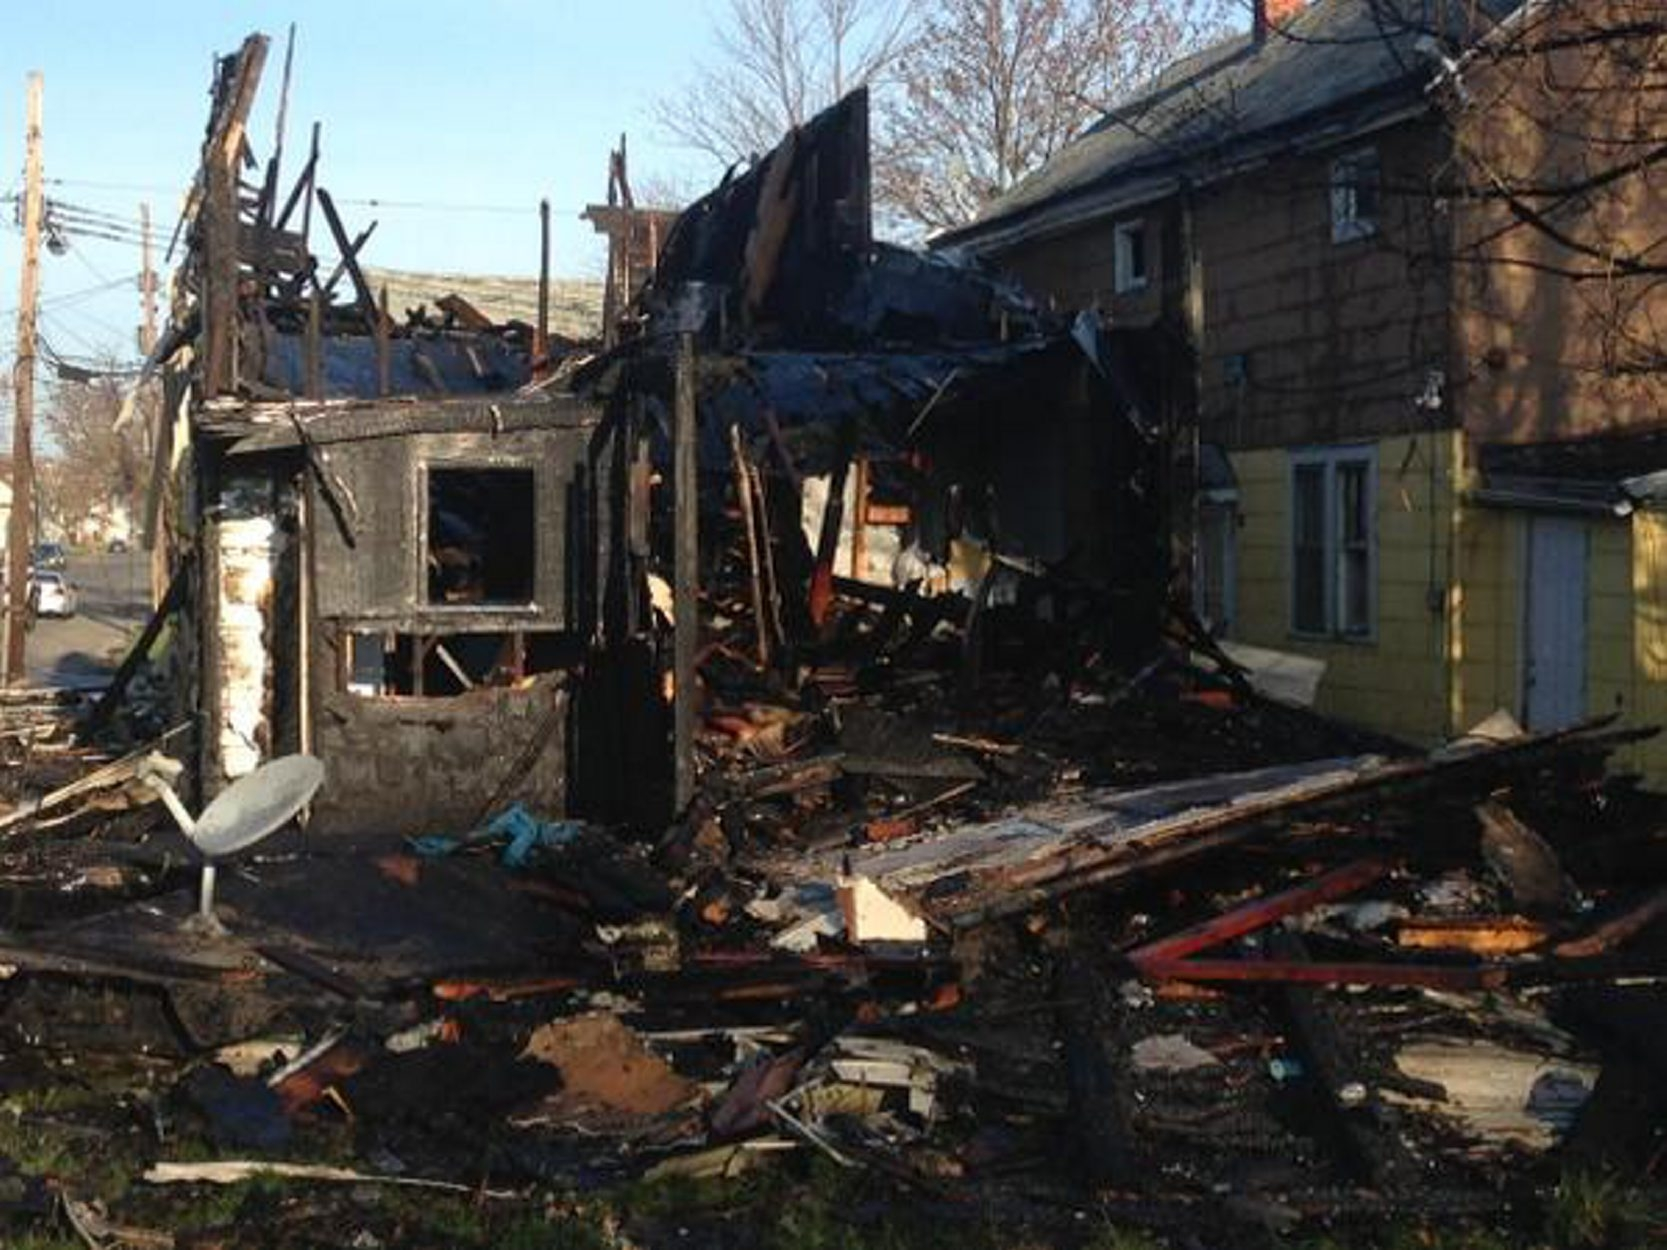 The vacant house on Deshler destroyed by fire Wednesday, April 29, 2015. (John Hickey/Buffalo News)